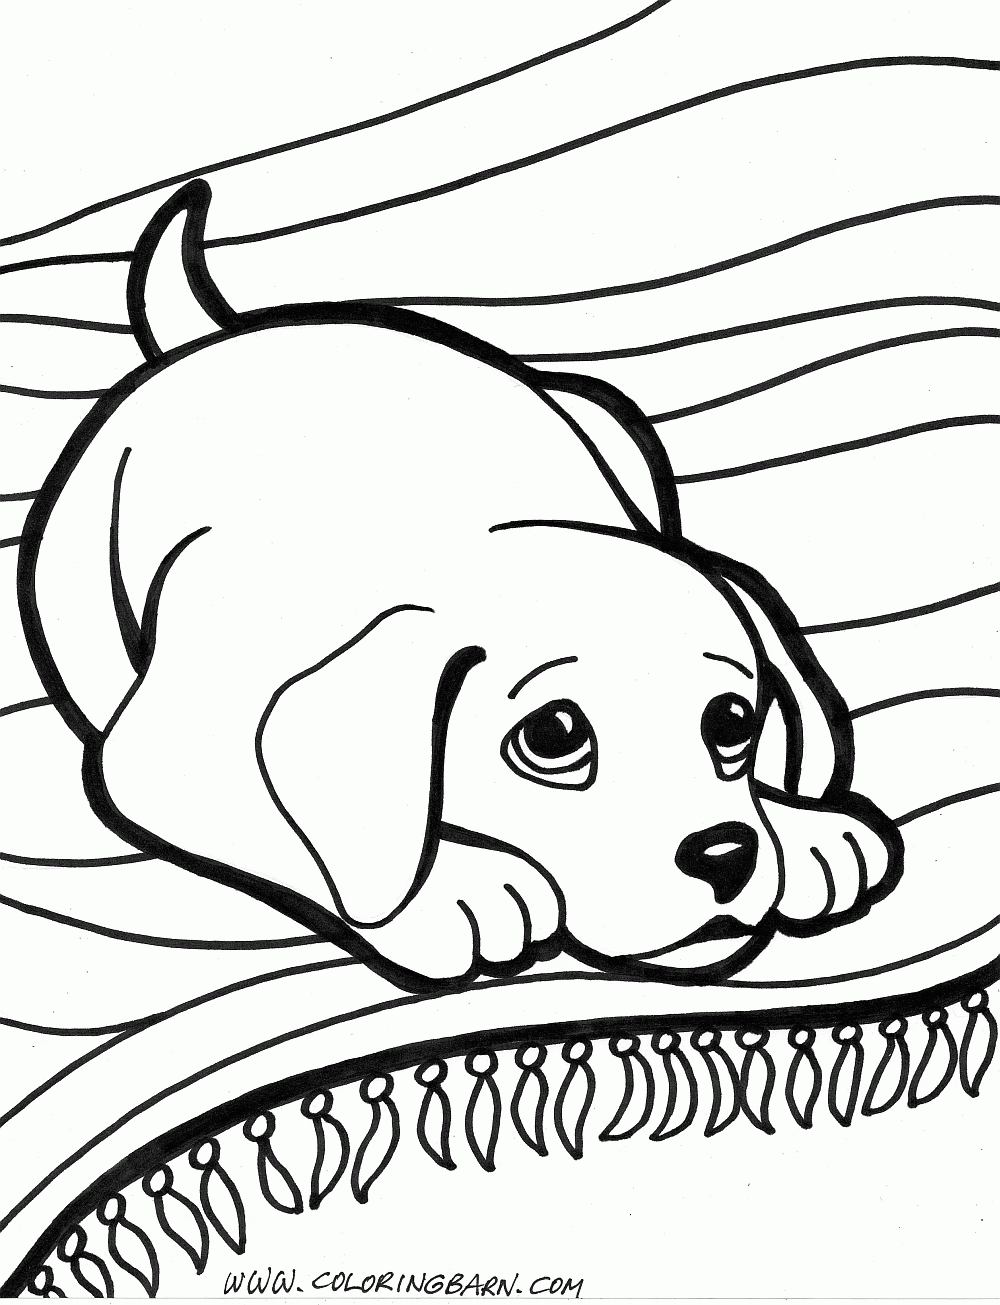 Puppy Dog Printable Coloring Pages Horse Coloring Pages Dog Coloring Book Puppy Coloring Pages